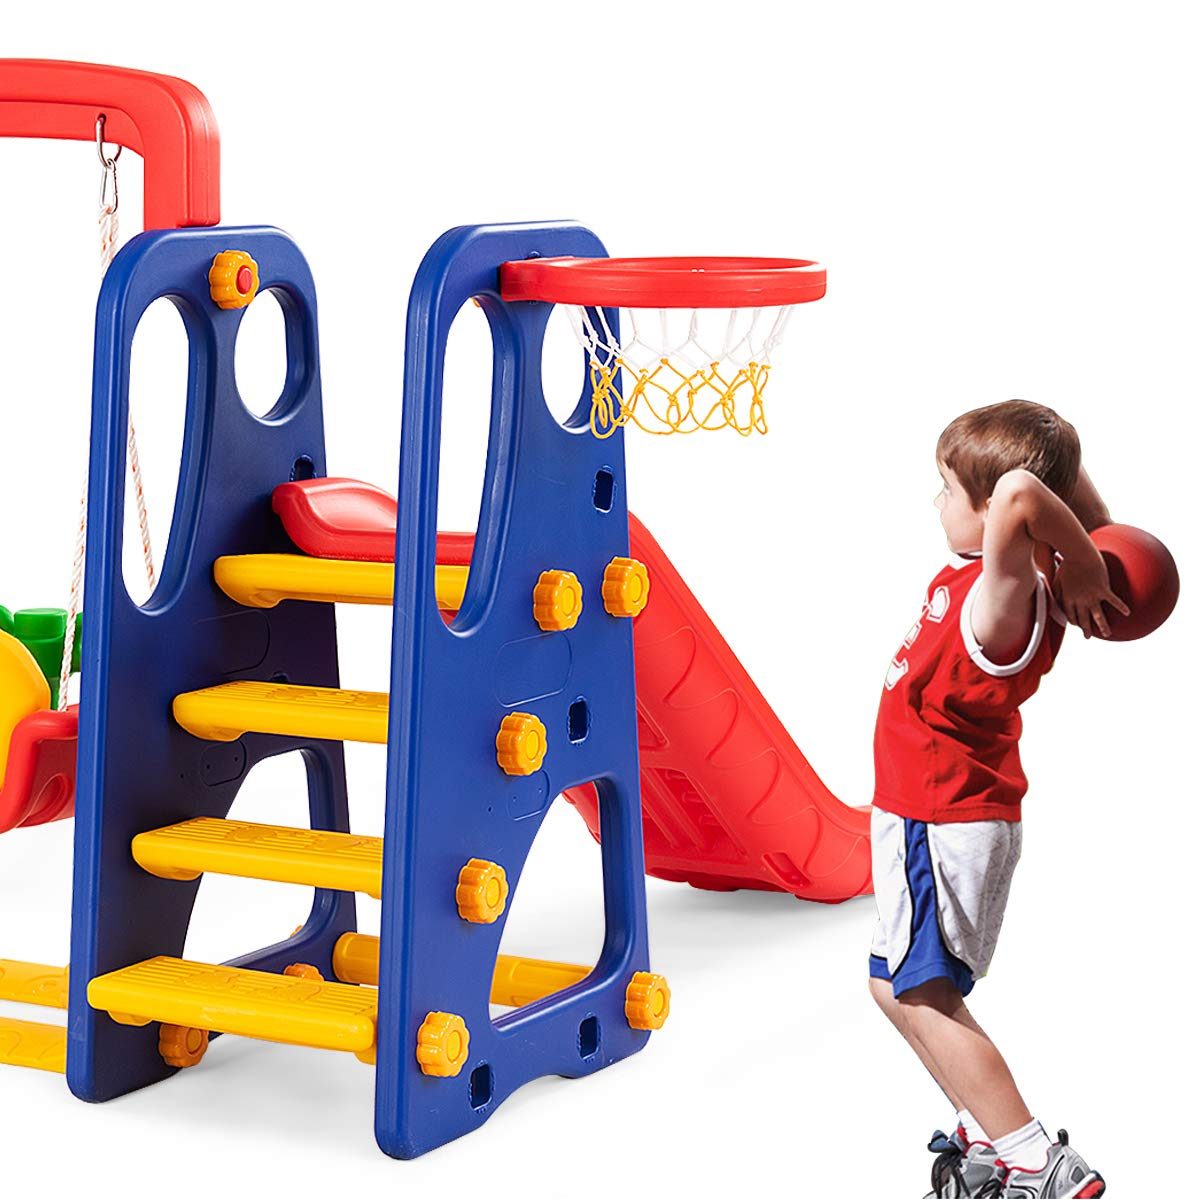 Costzon Toddler Climber and Swing Set, Junior Basketball Hoop Playset for Both Indoors & Backyard (3-in-1 Slide & Swing Set) by Costzon (Image #8)